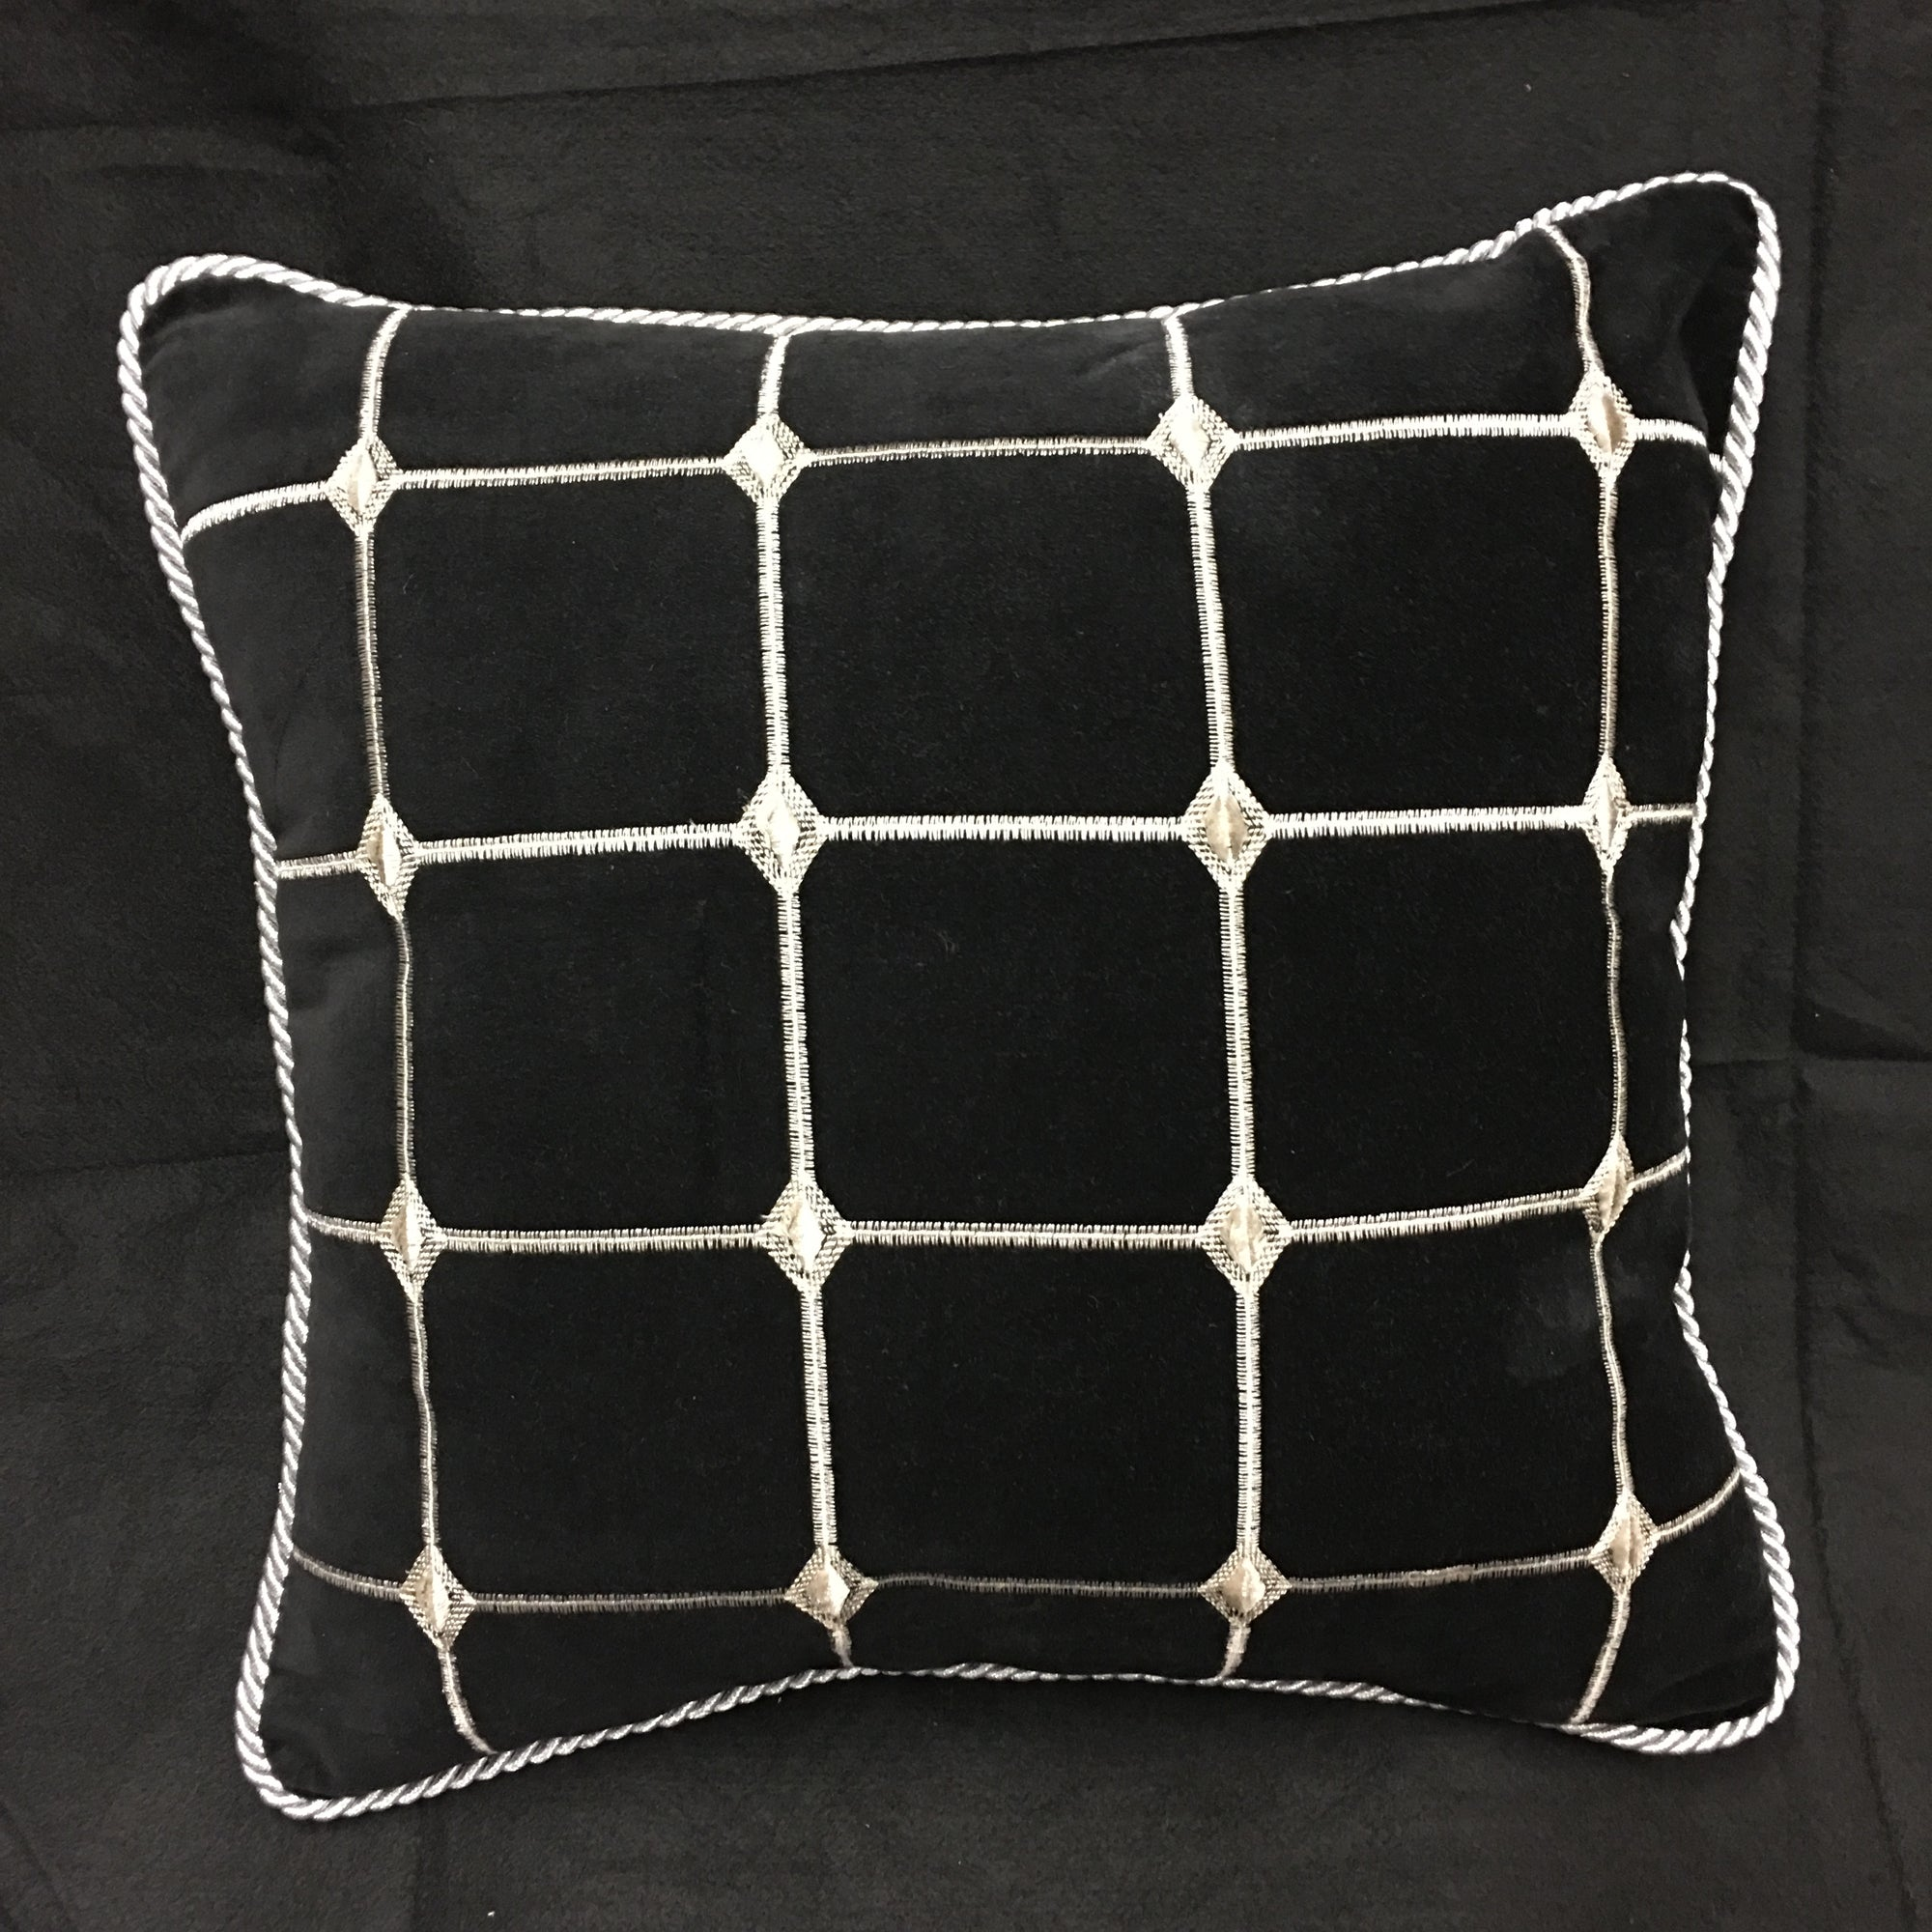 Black Velvet Accent Pillow with metallic silver Cord Trim